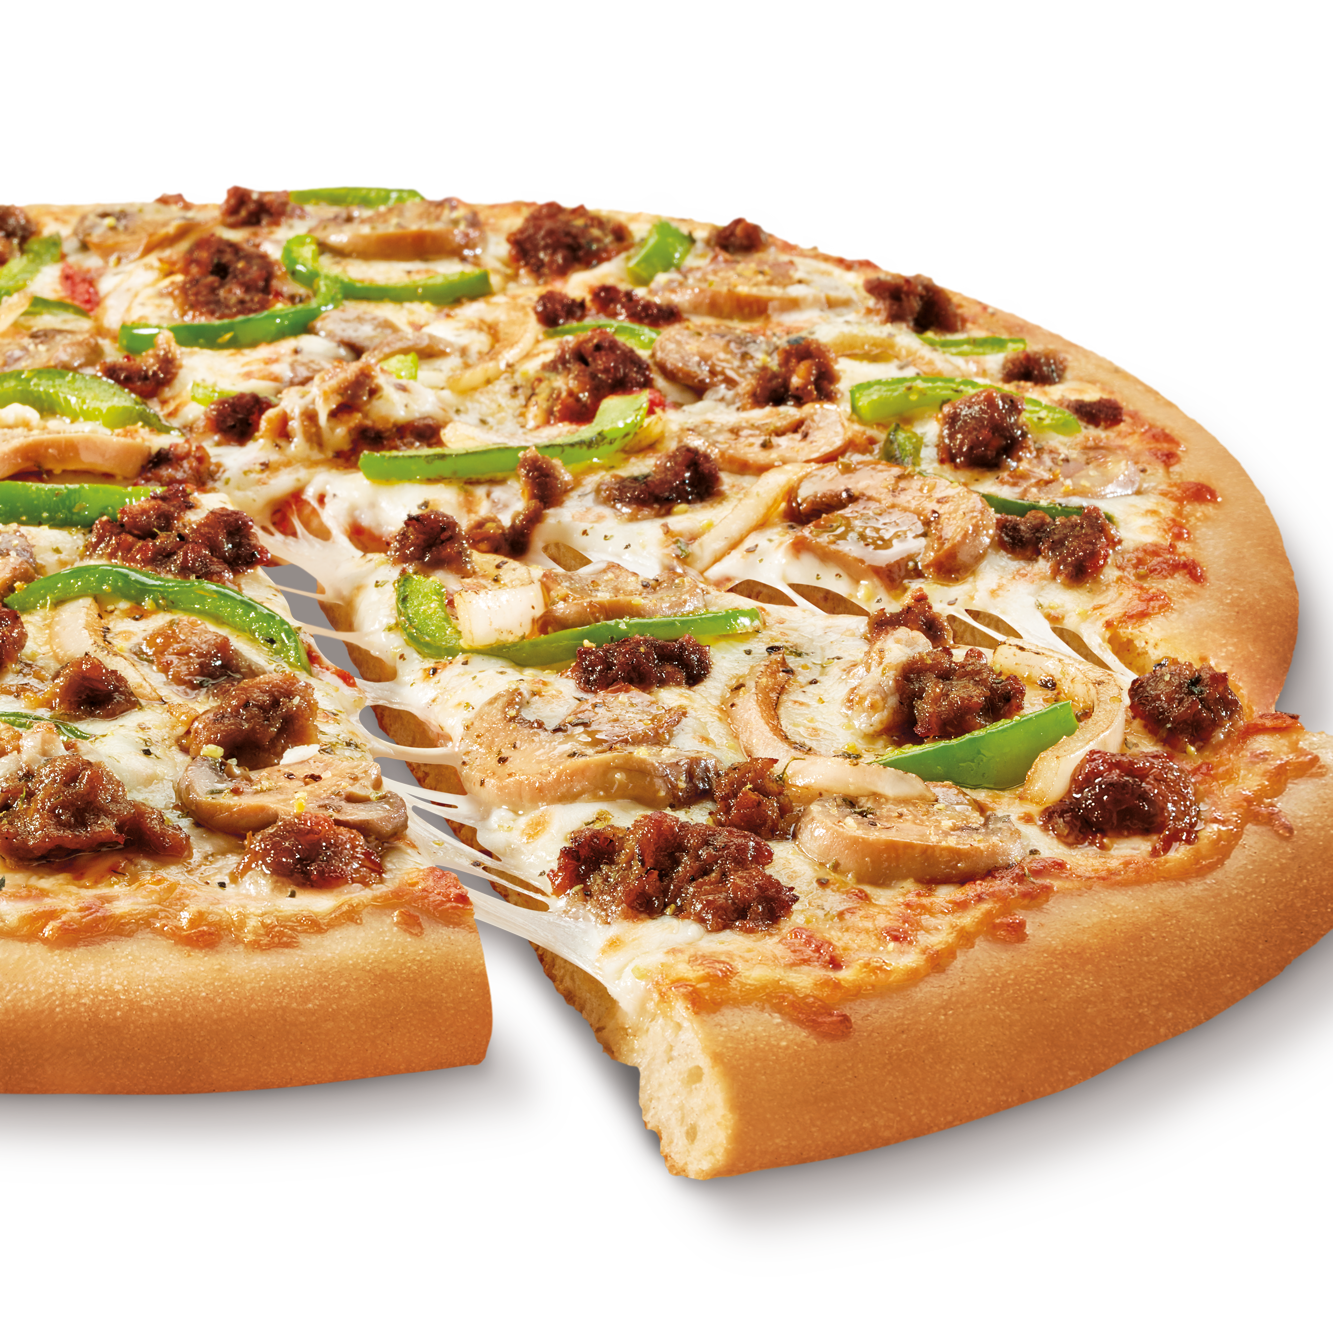 Little Caesars testing plant-based sausage topping on pizza